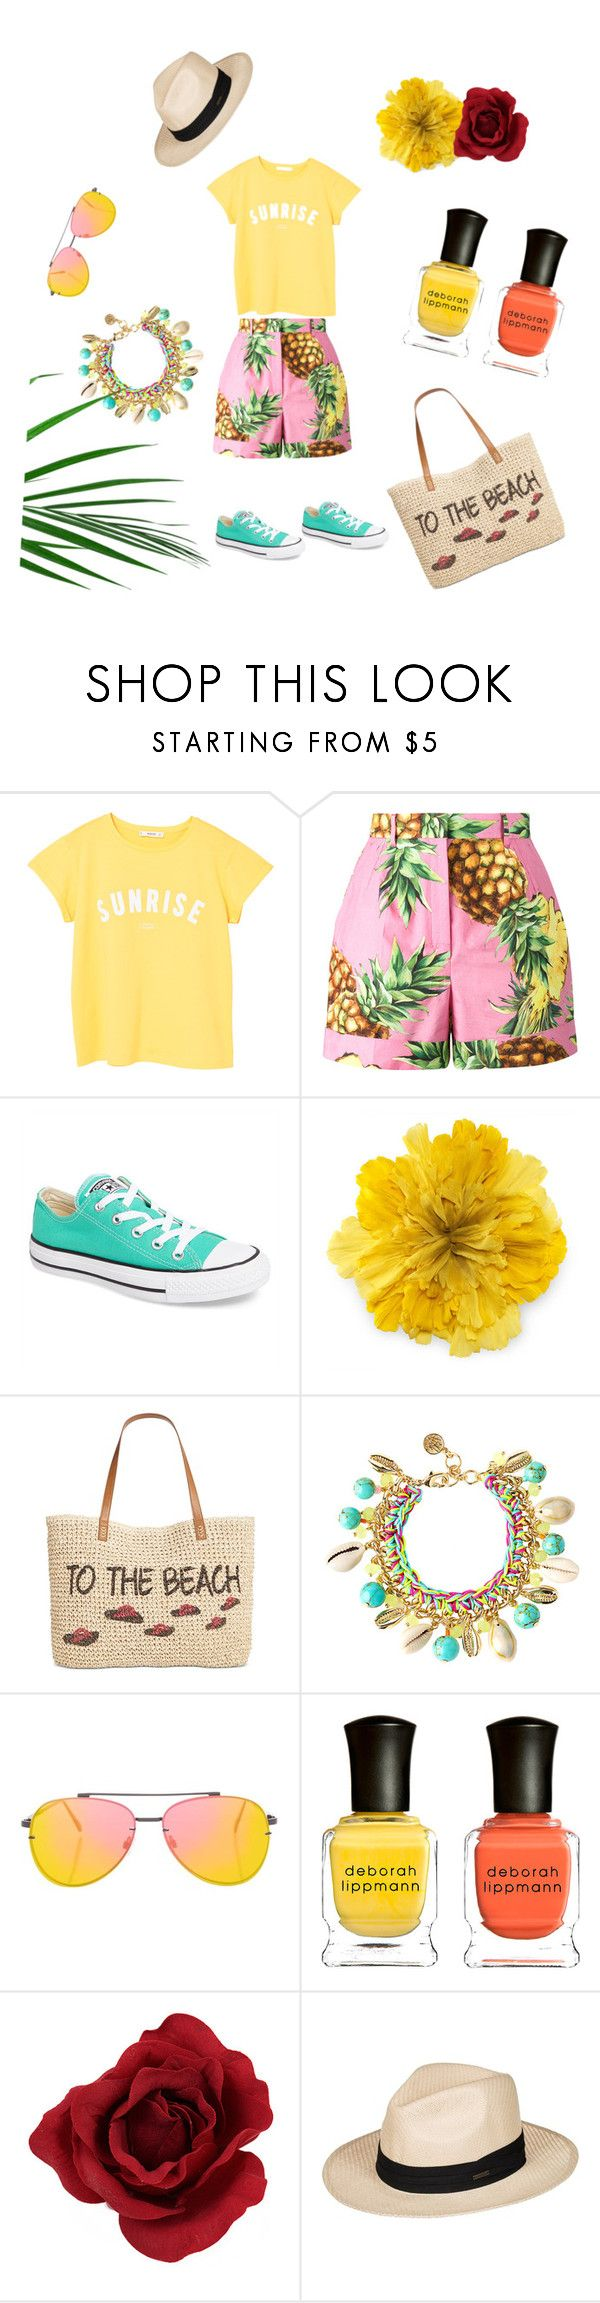 """#Пляжная_вечеринка"" by jeanne-creative ❤ liked on Polyvore featuring MANGO, Dolce&Gabbana, Converse, Gucci, Style & Co., Lilly Pulitzer, Topshop, Deborah Lippmann and Roxy"